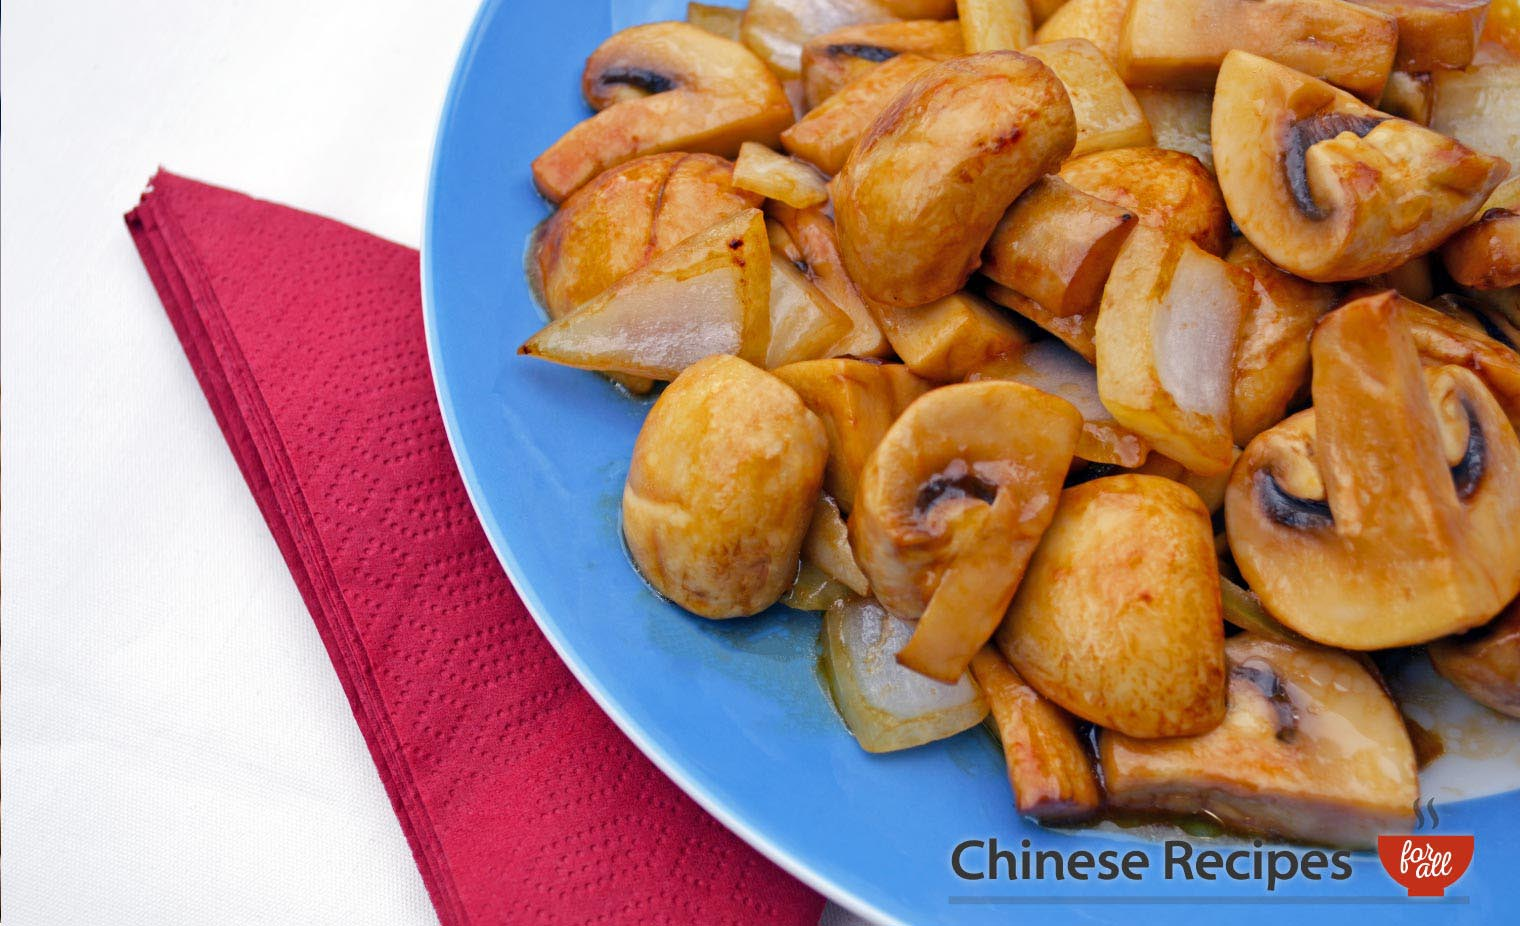 Mushrooms - Chinese Recipes For All